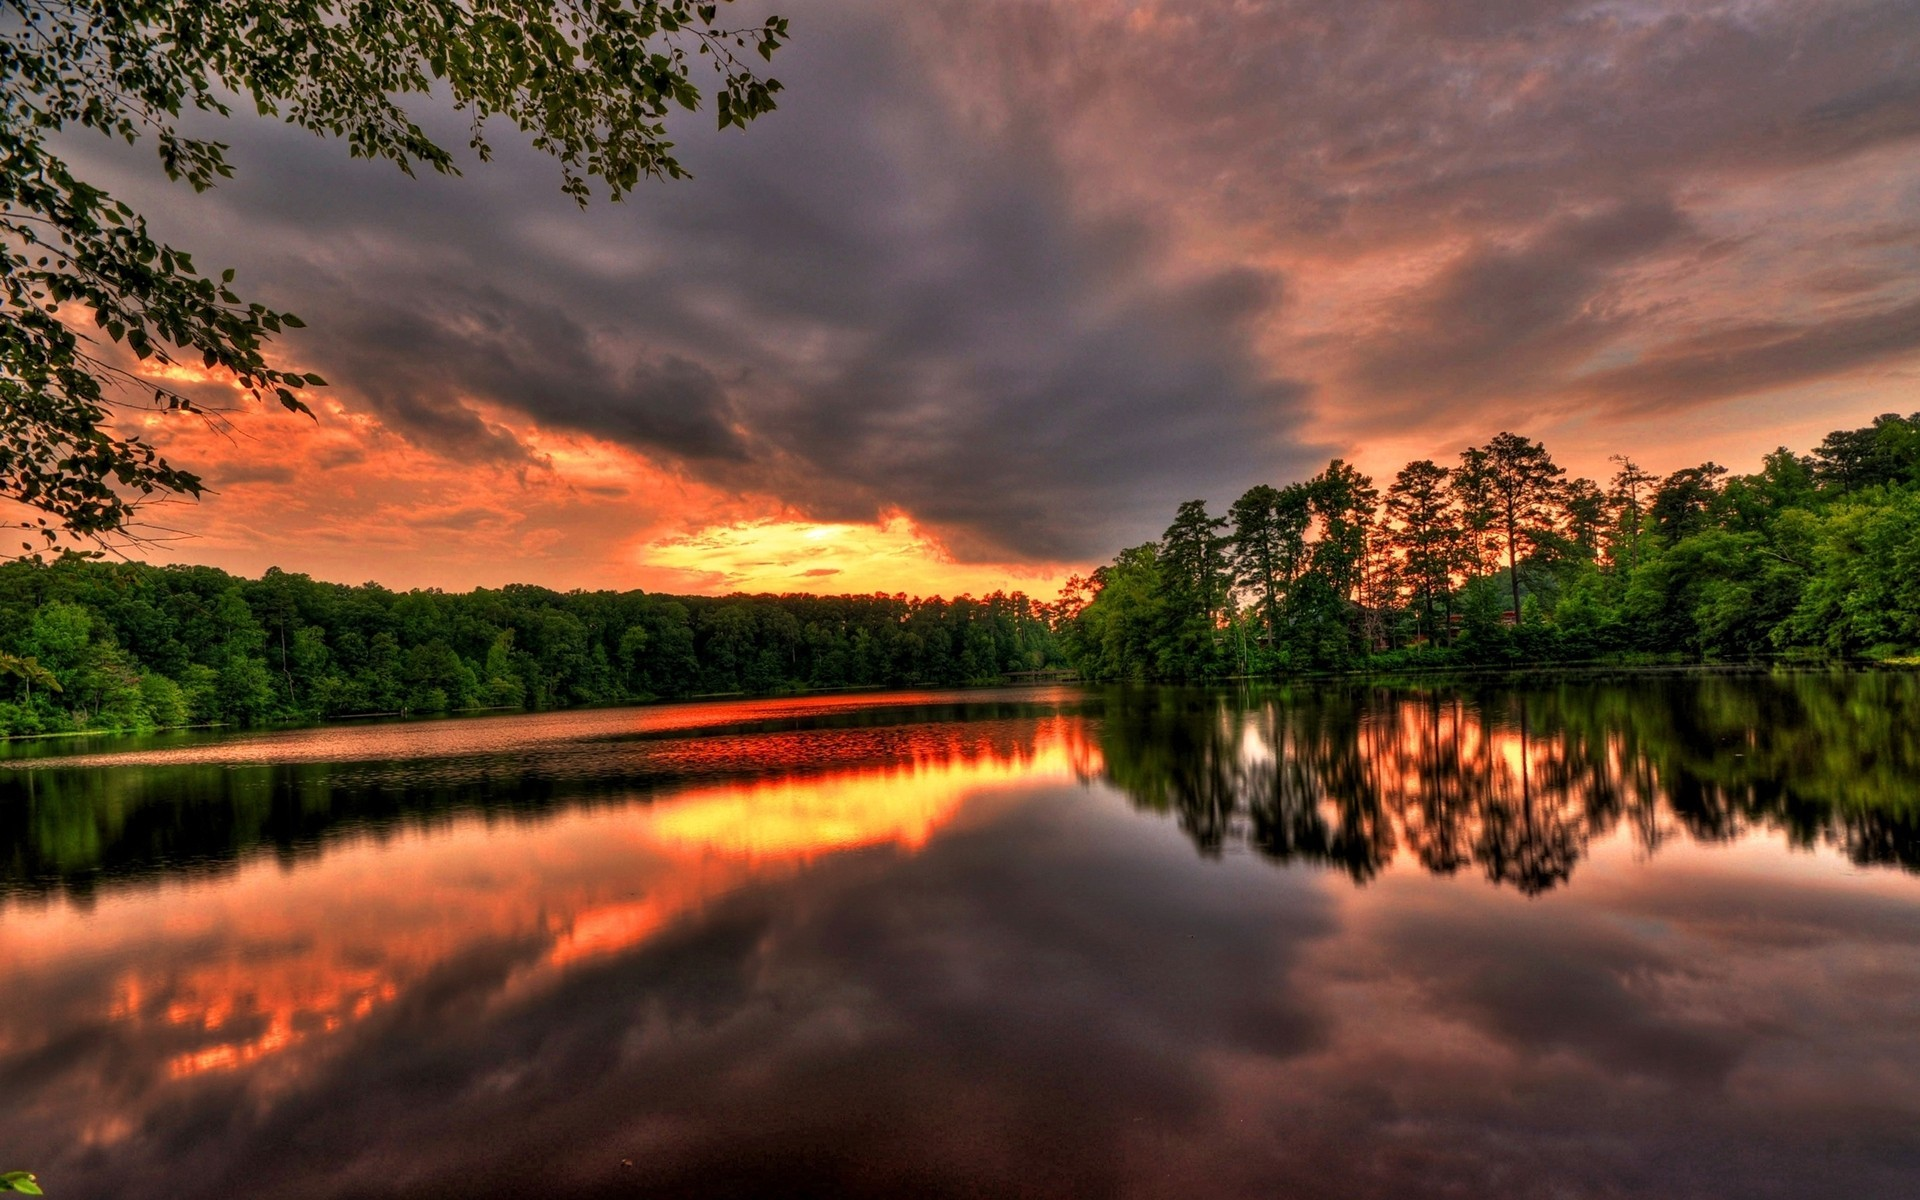 sunset Landscapes nature lakes HD Wallpaper